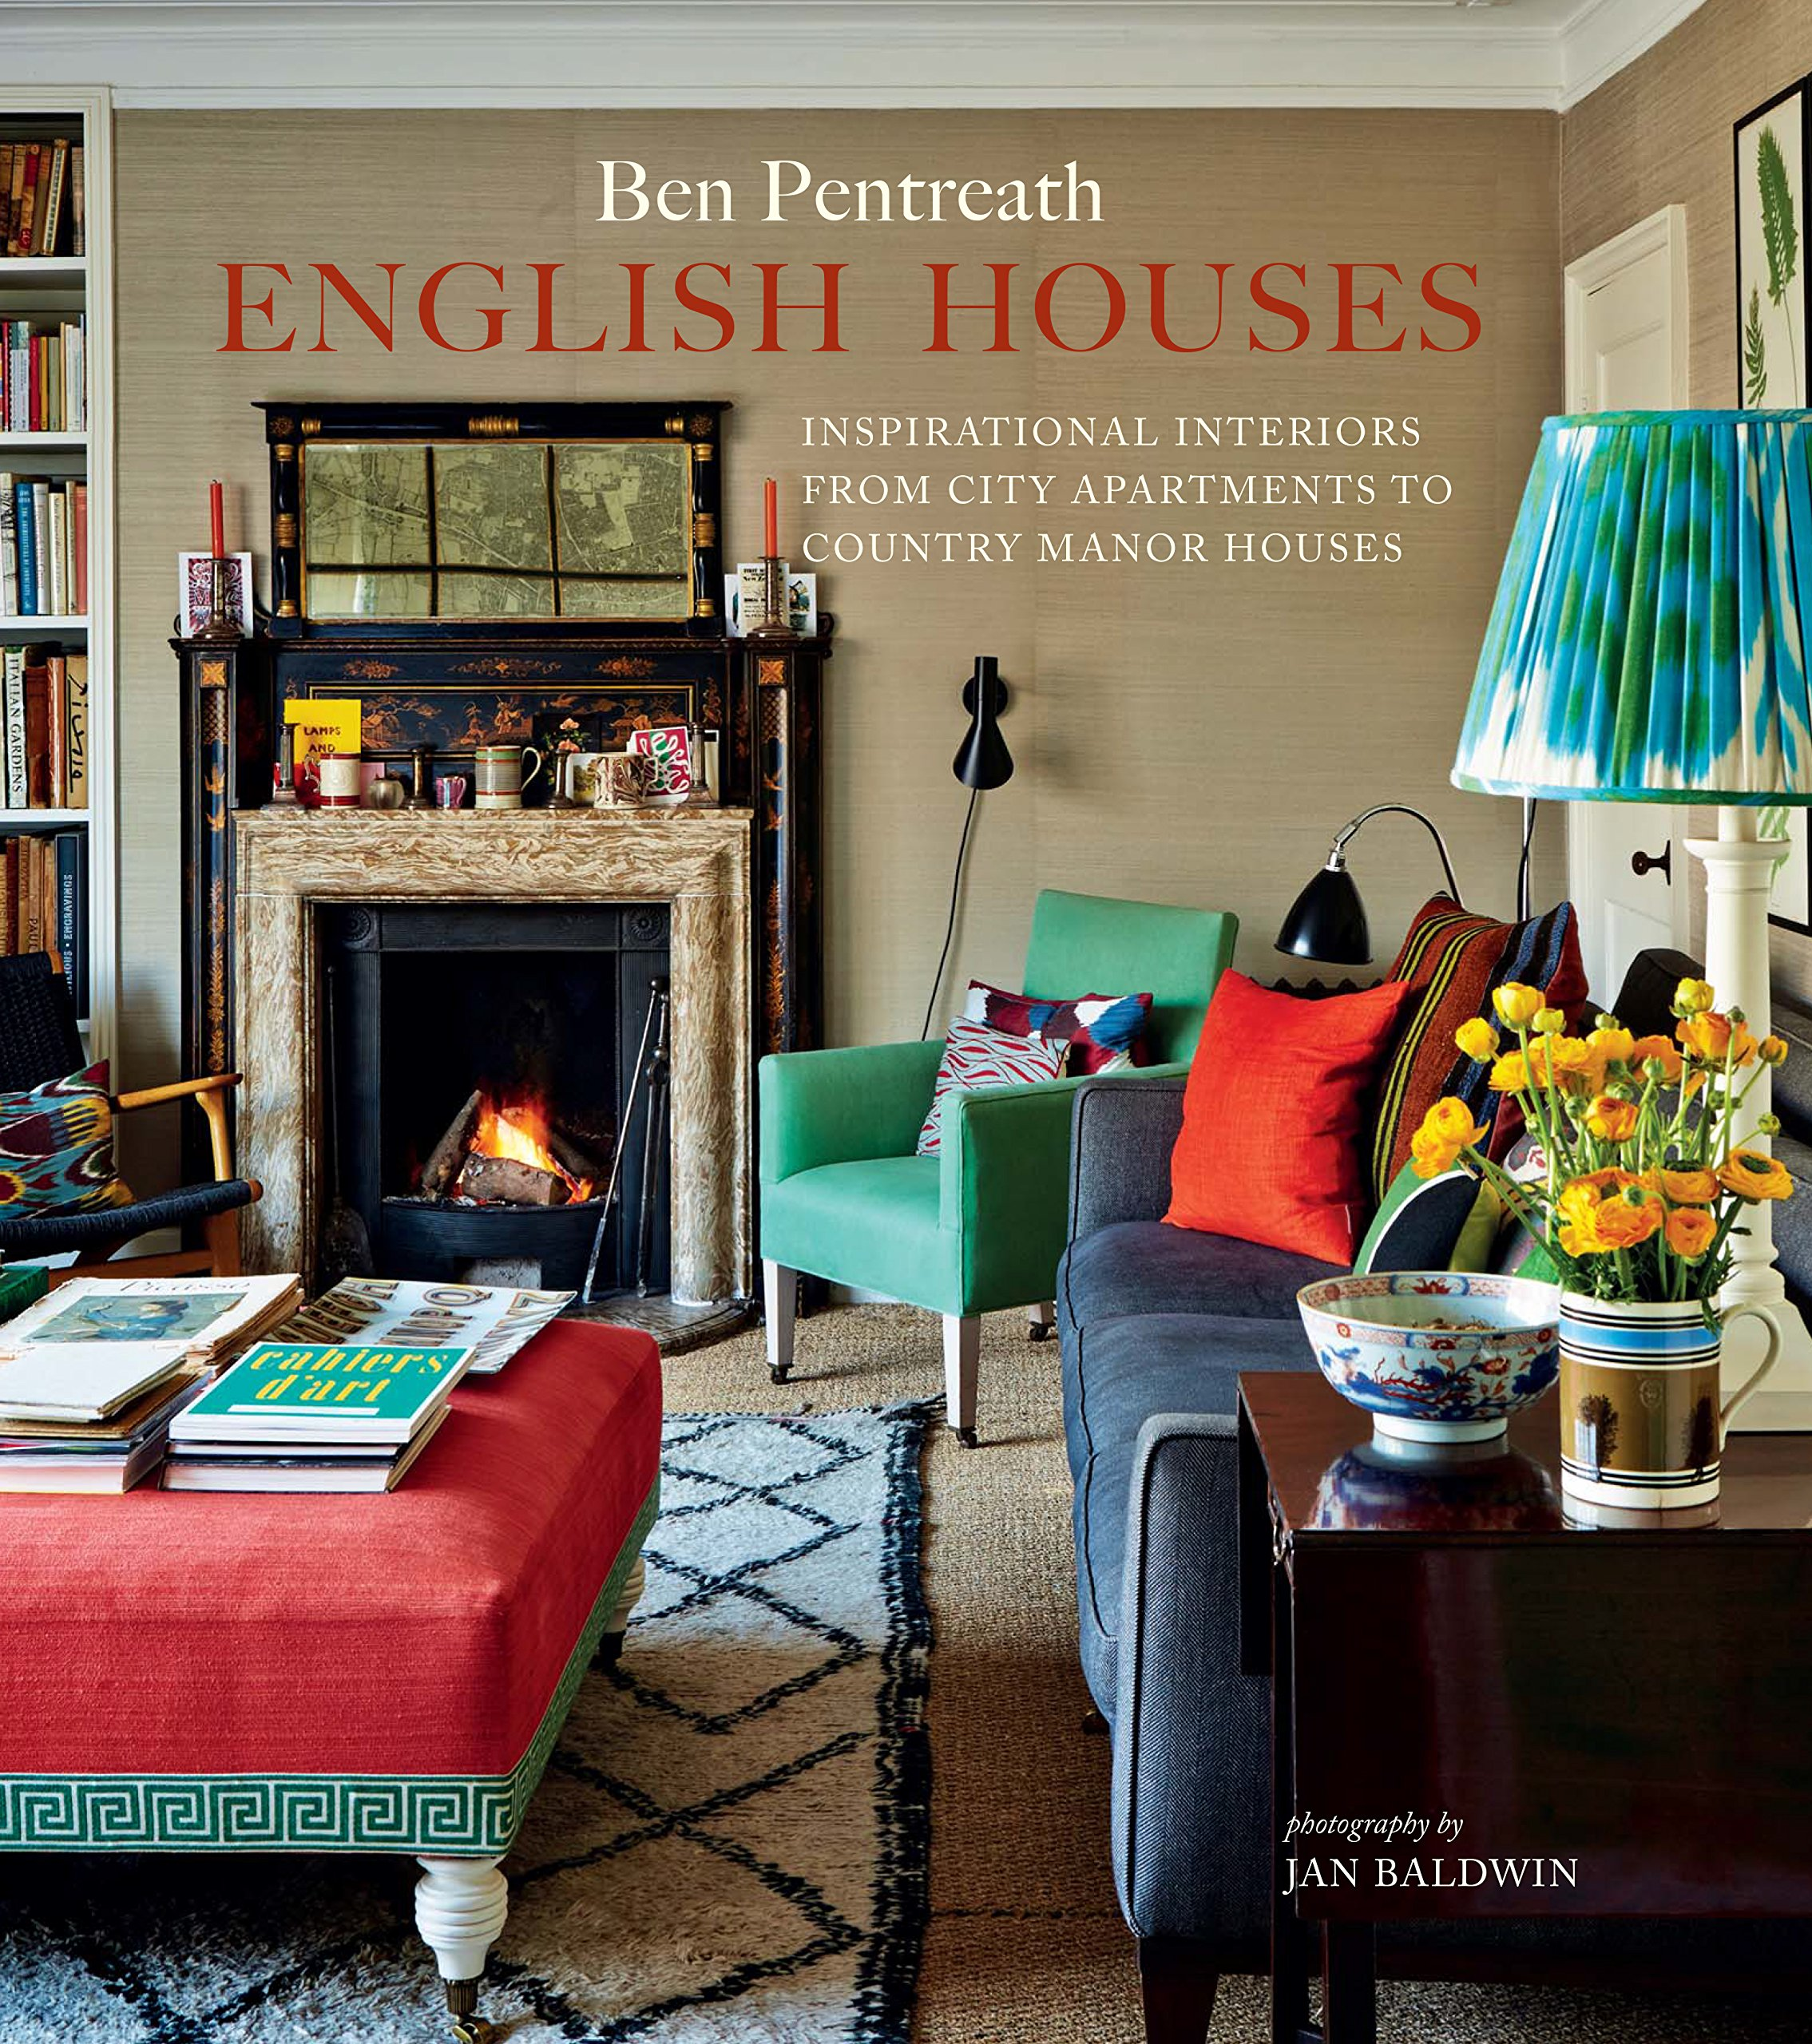 English houses inspirational interiors from city apartments to country manor houses hardcover oct 11 2016